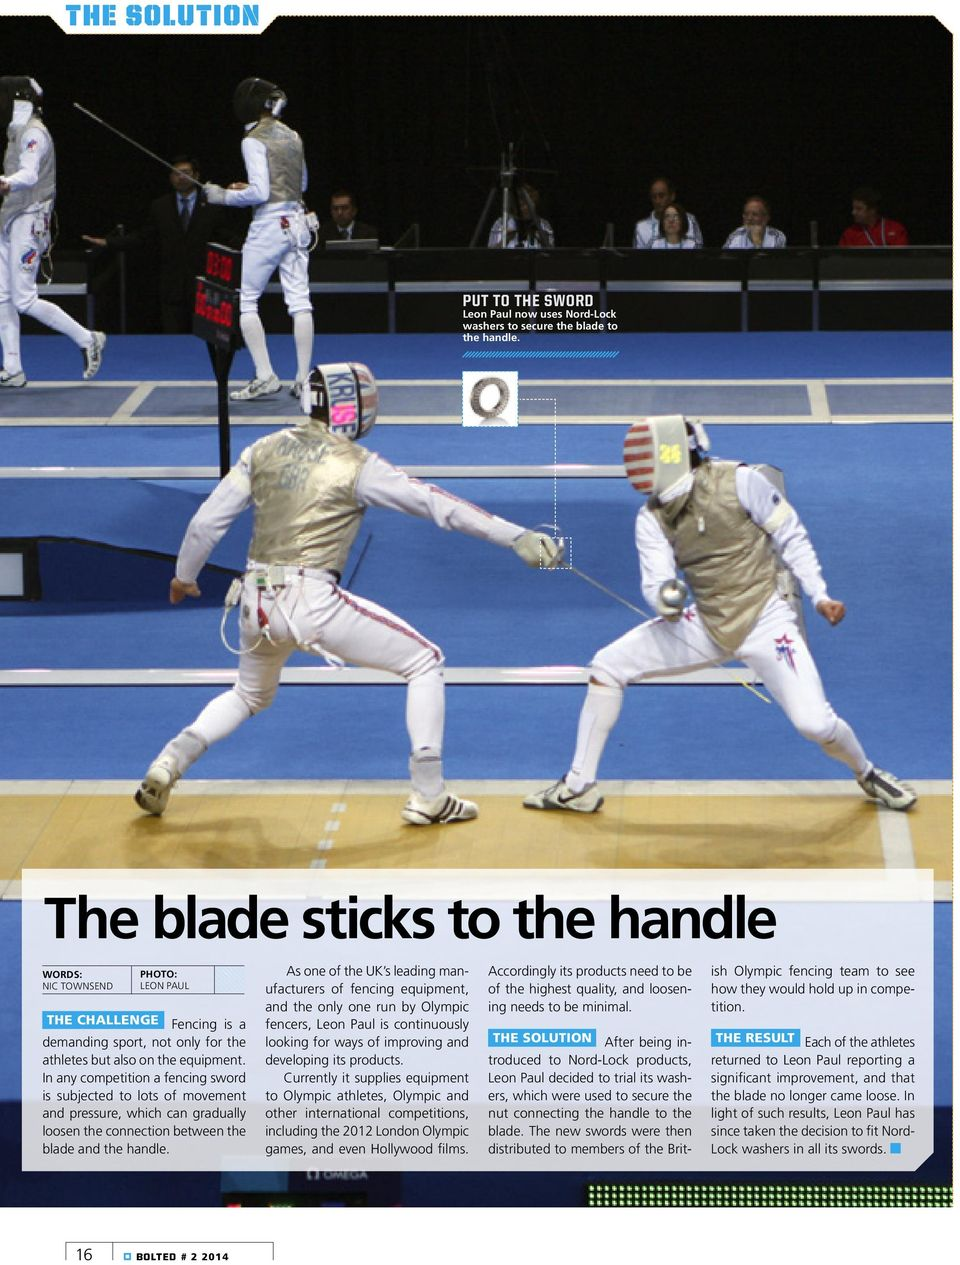 In any competition a fencing sword is subjected to lots of movement and pressure, which can gradually loosen the connection between the blade and the handle.